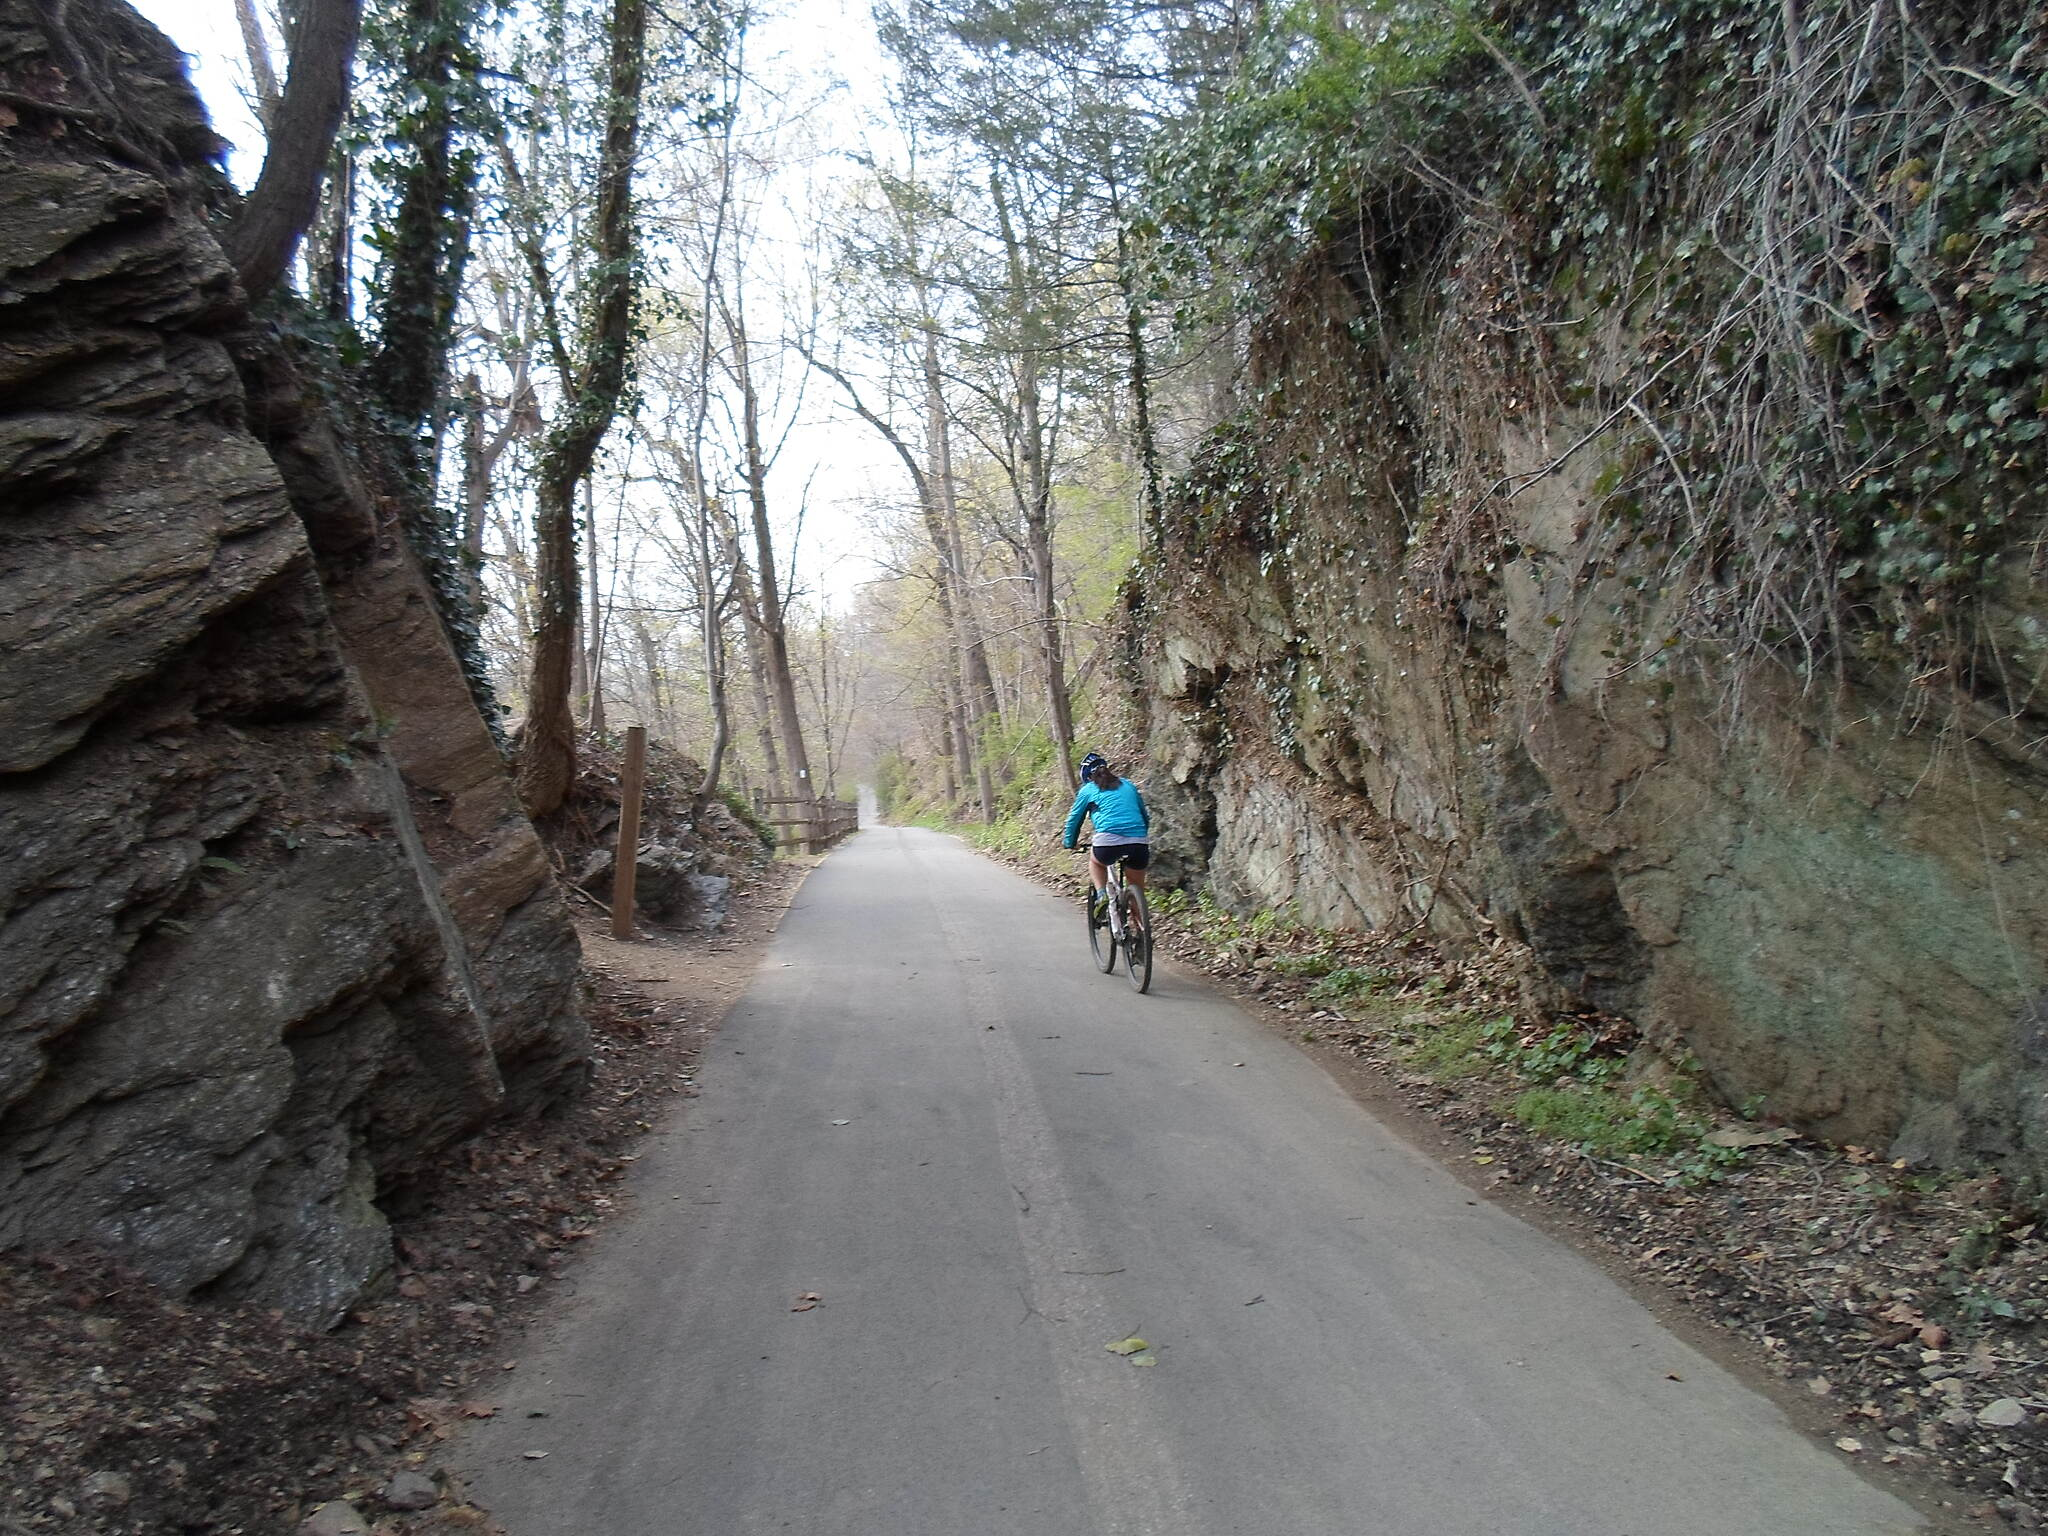 East Branch Brandywine Trail East Branch Brandywine Trail Cyclist passing through the old rock cut near the trail's southern terminus. Taken April 2015.